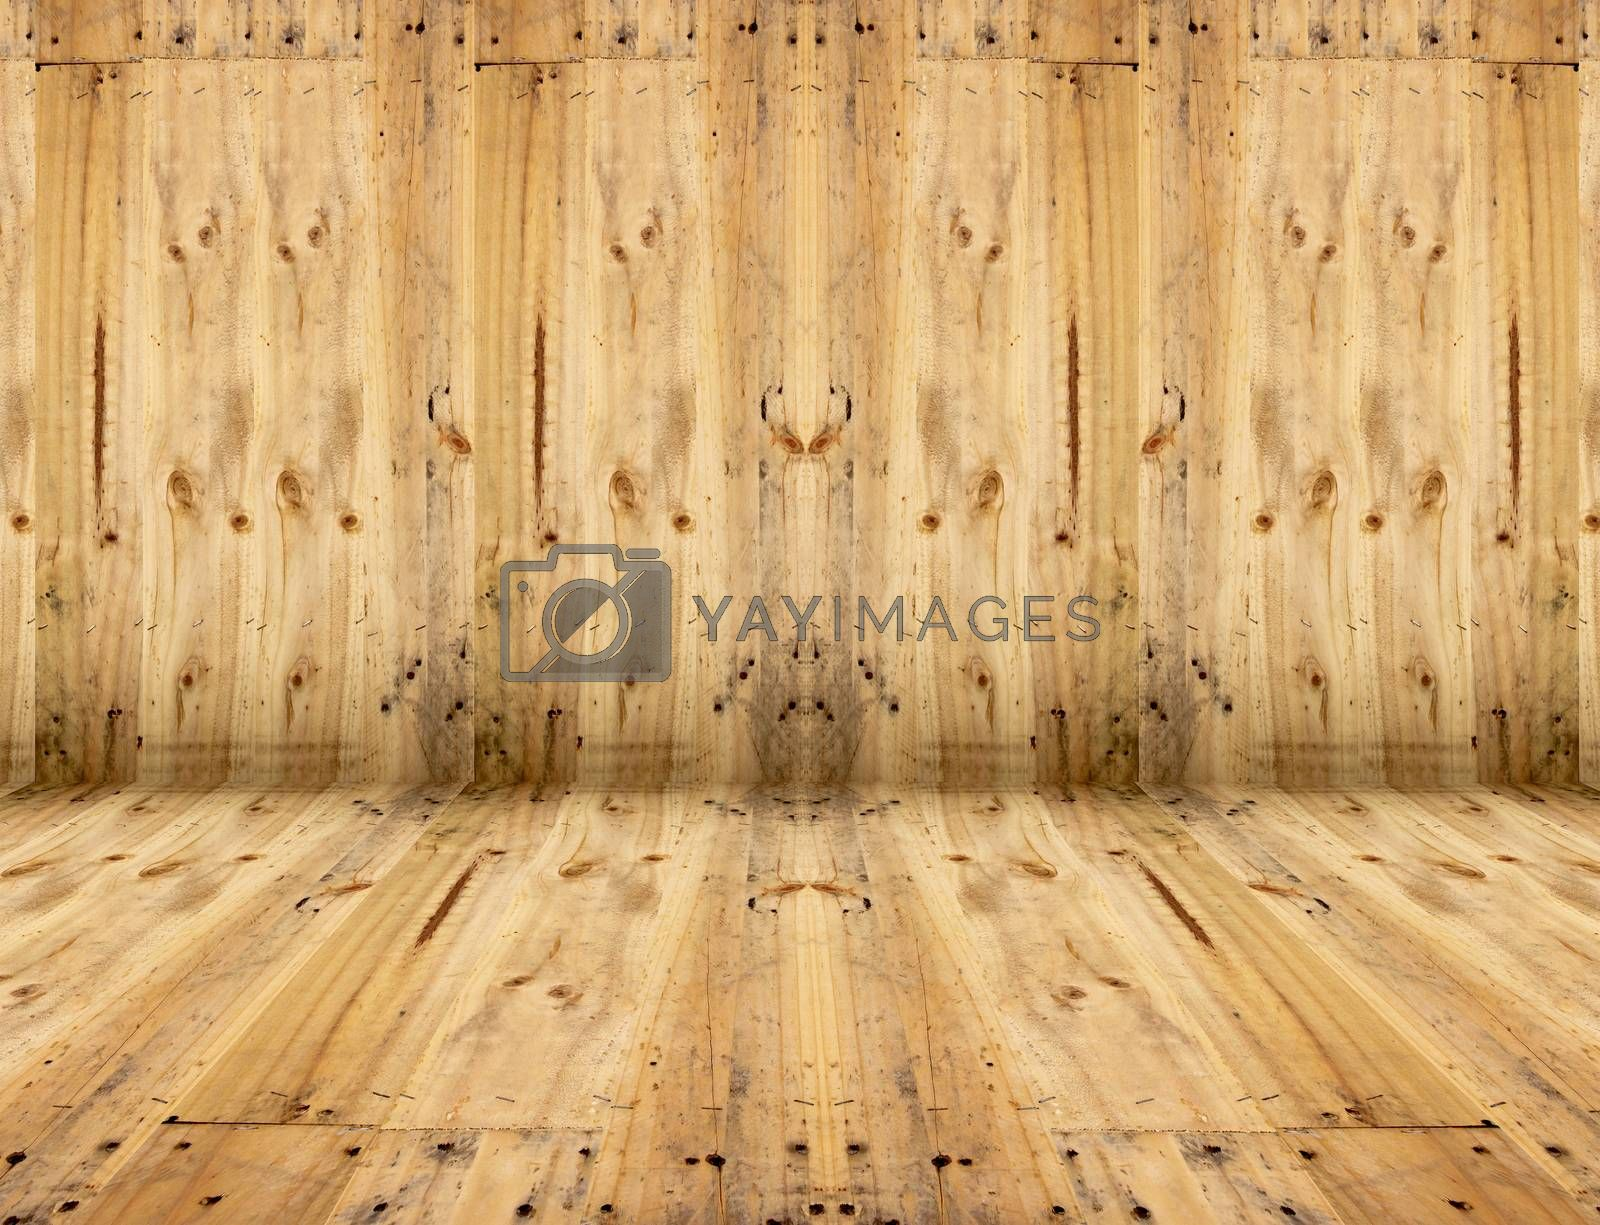 Texture of old wooden planks. by meepoohyaphoto